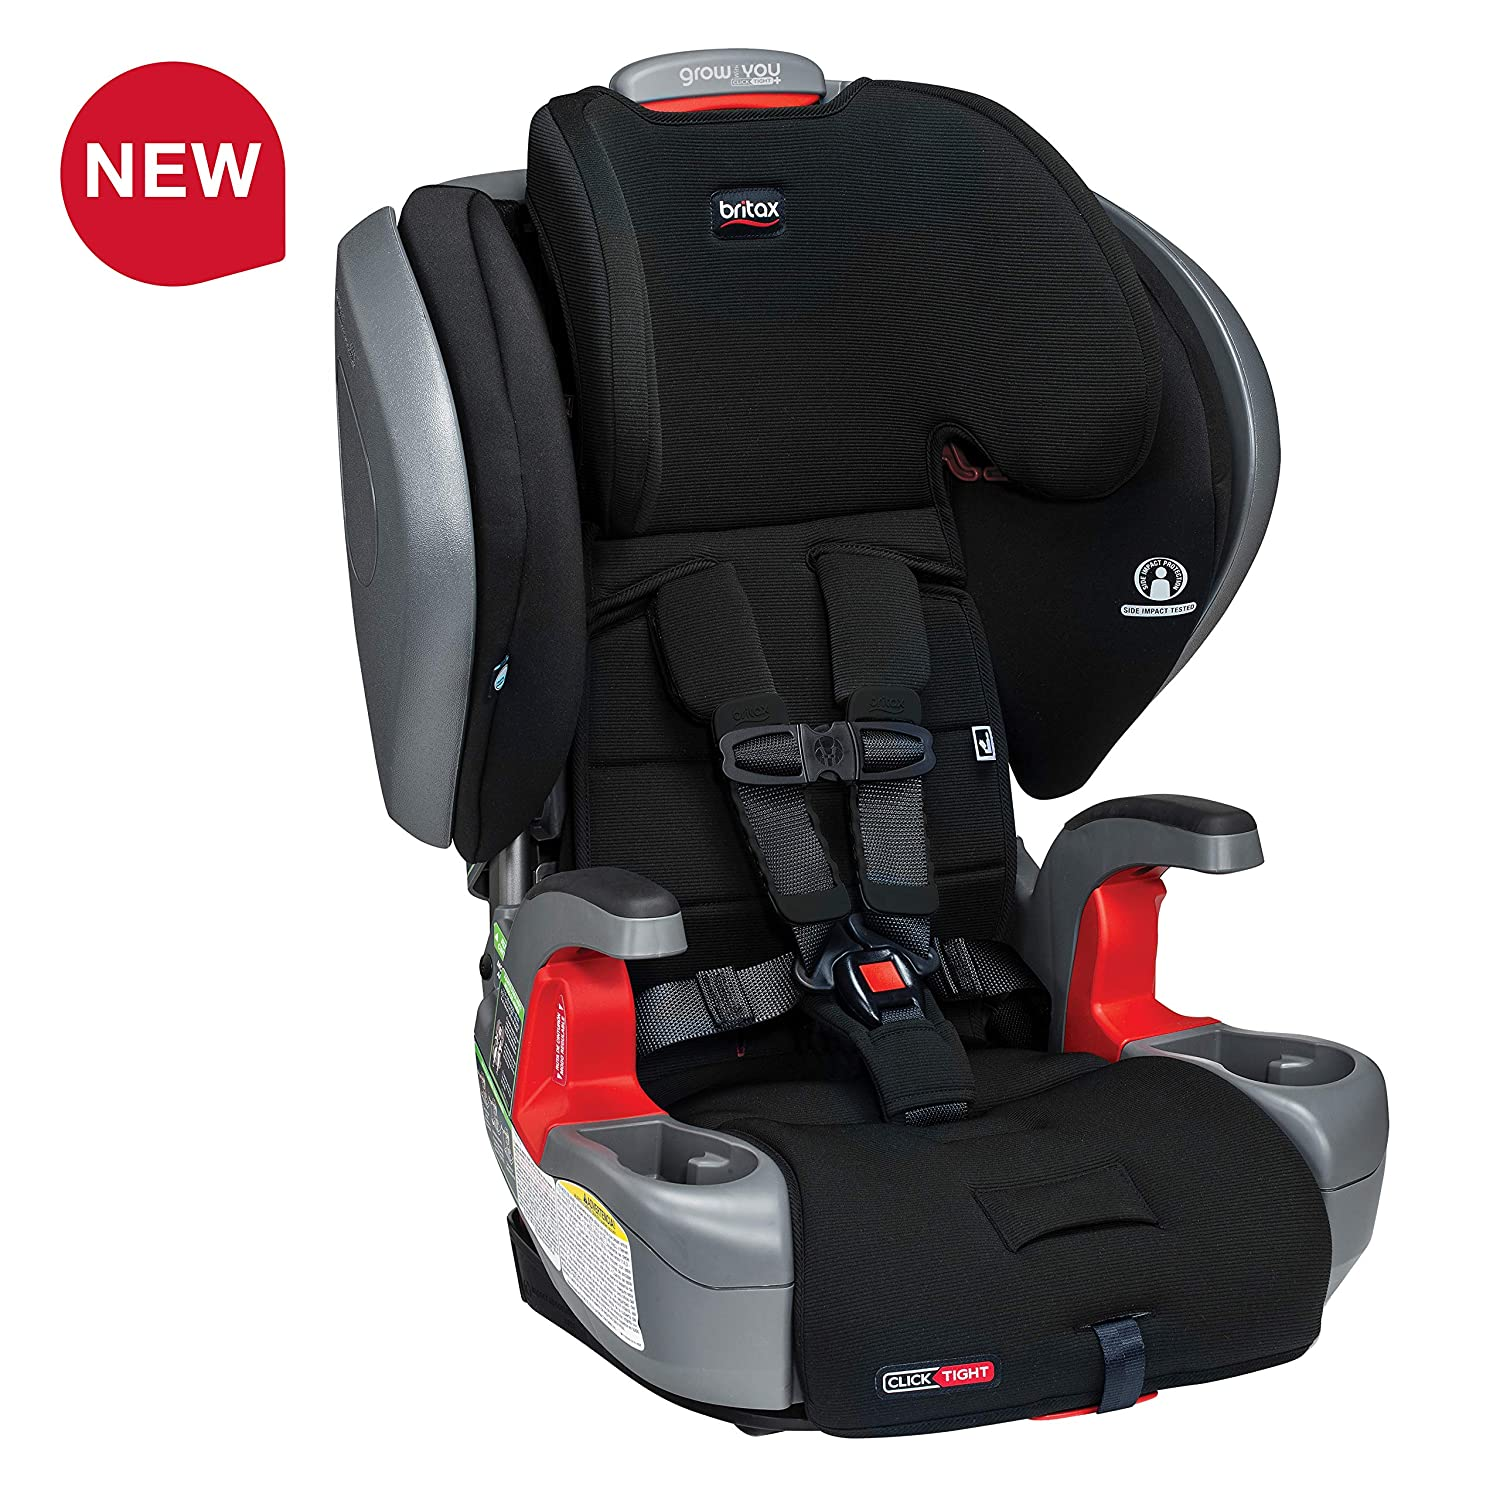 Britax Grow with You ClickTight Plus Harness-2-Booster Car Seat – 3 Layer Impact Protection – 25 to 120 pounds, Jet Safewash Fabric Newer Version of Pinnacle